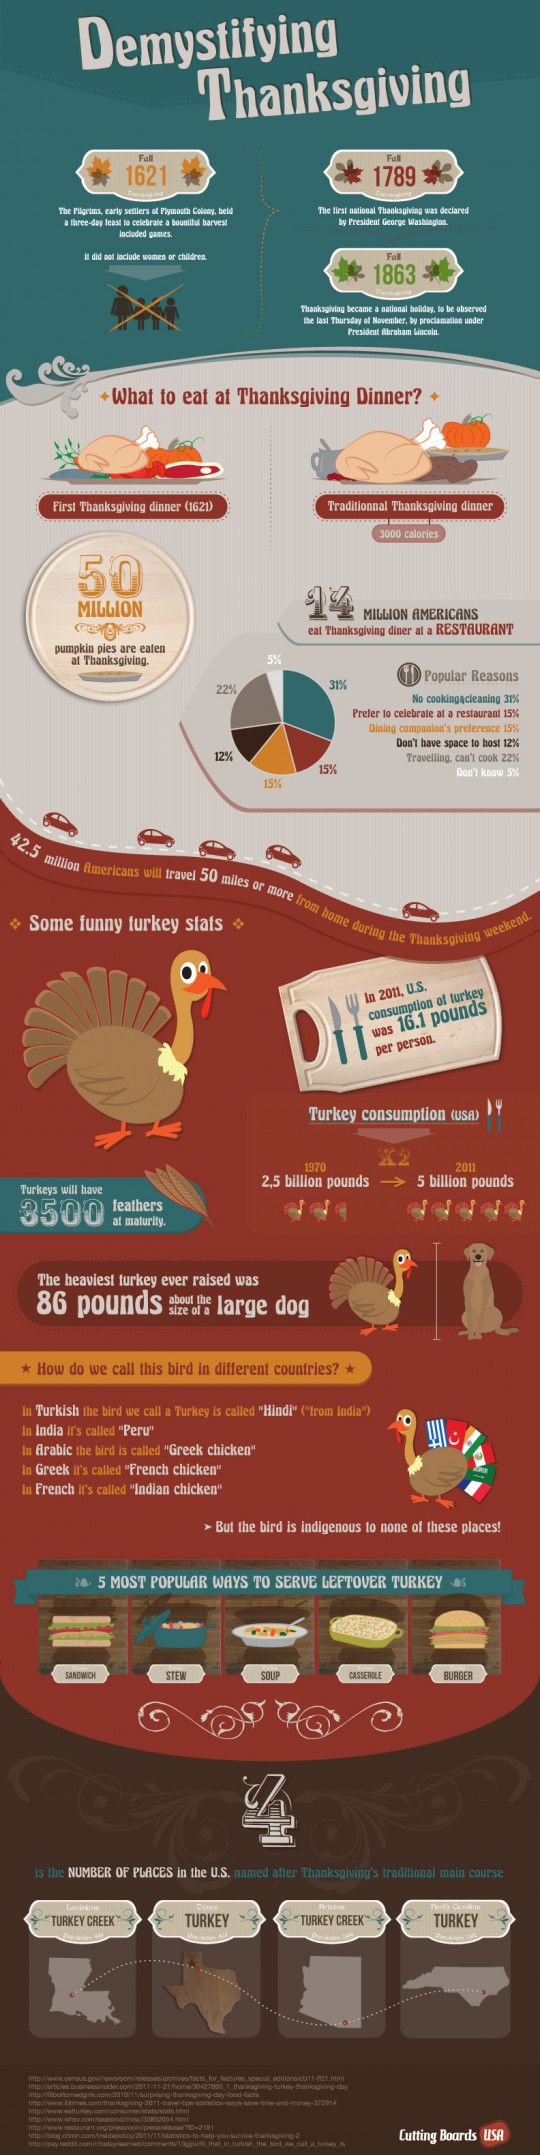 Demystifying Thanksgiving